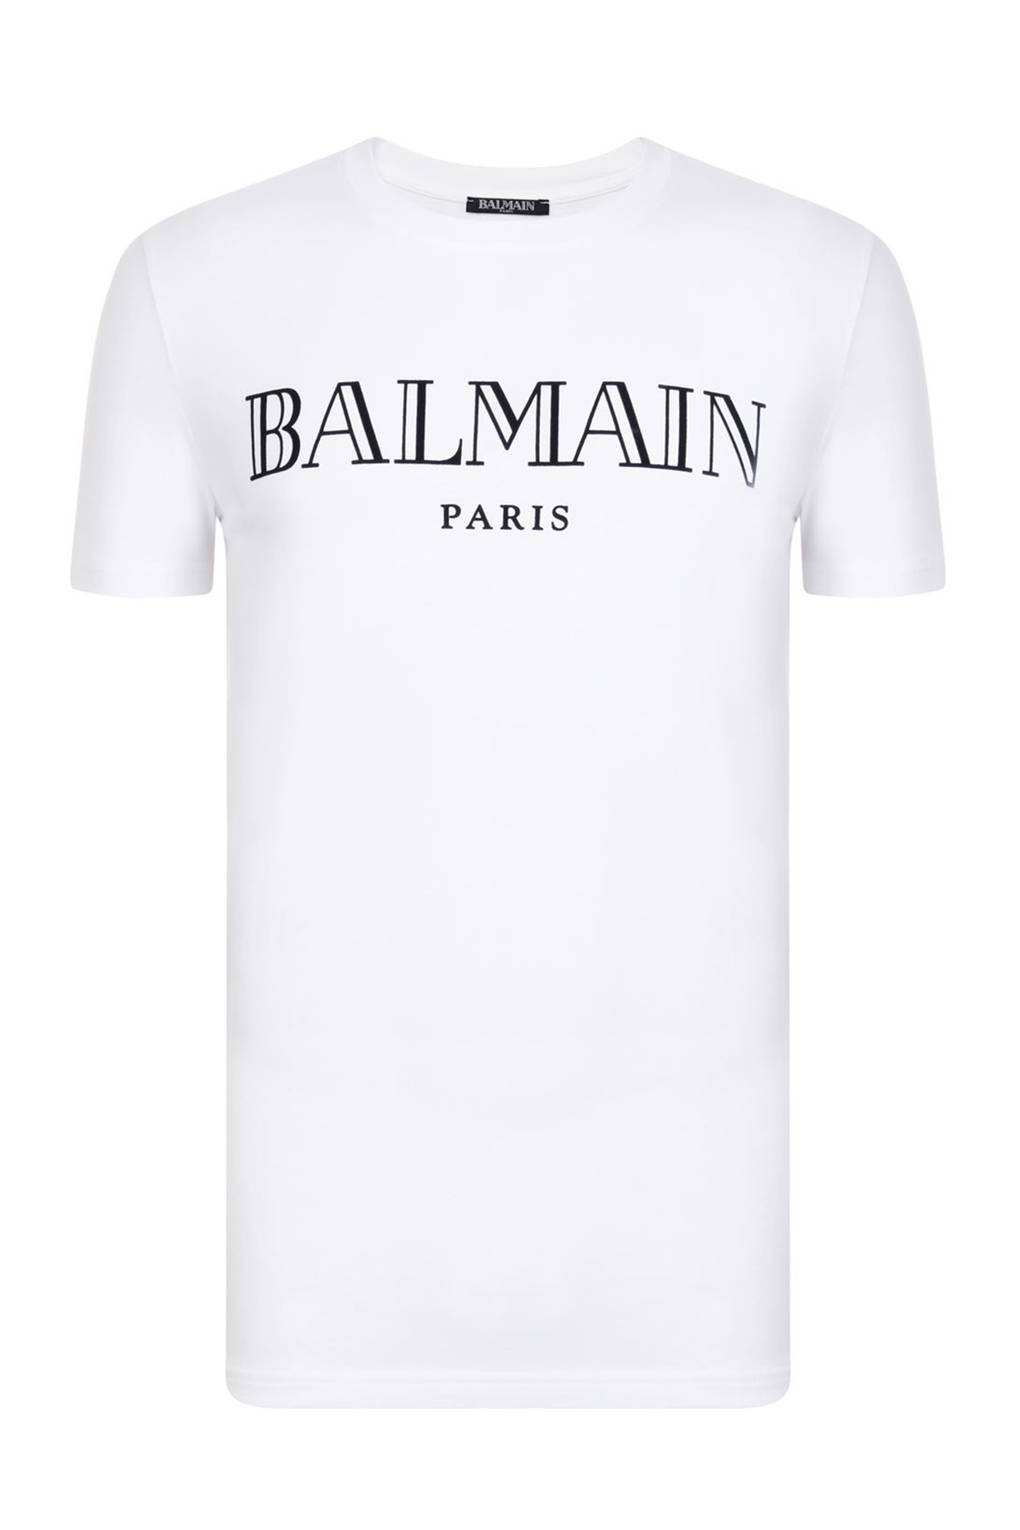 a47f0b11 The best logo T-shirts in the world right now | British GQ